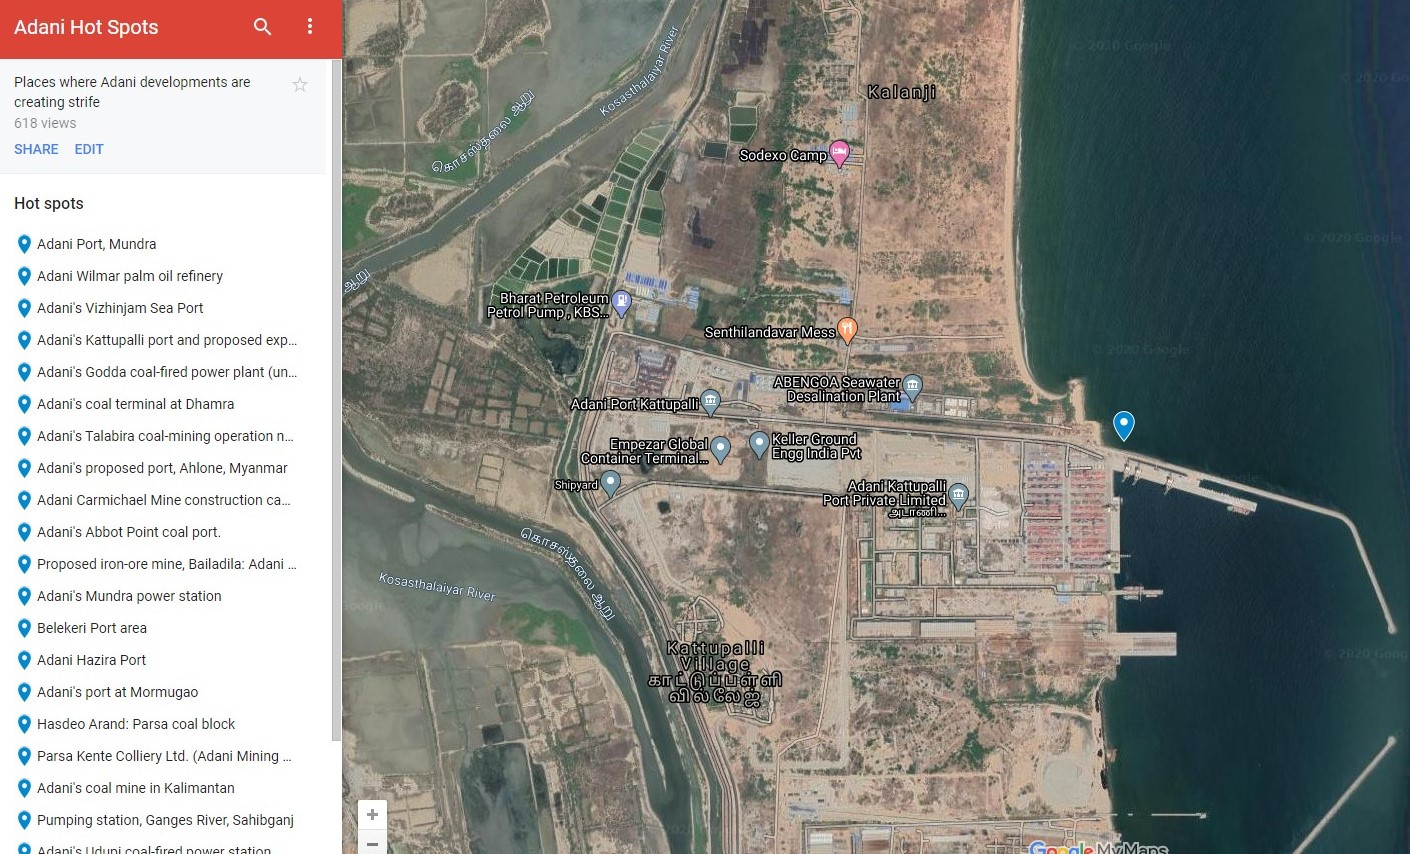 Adani's Kattupalli port, north of Chennai. Photo Google